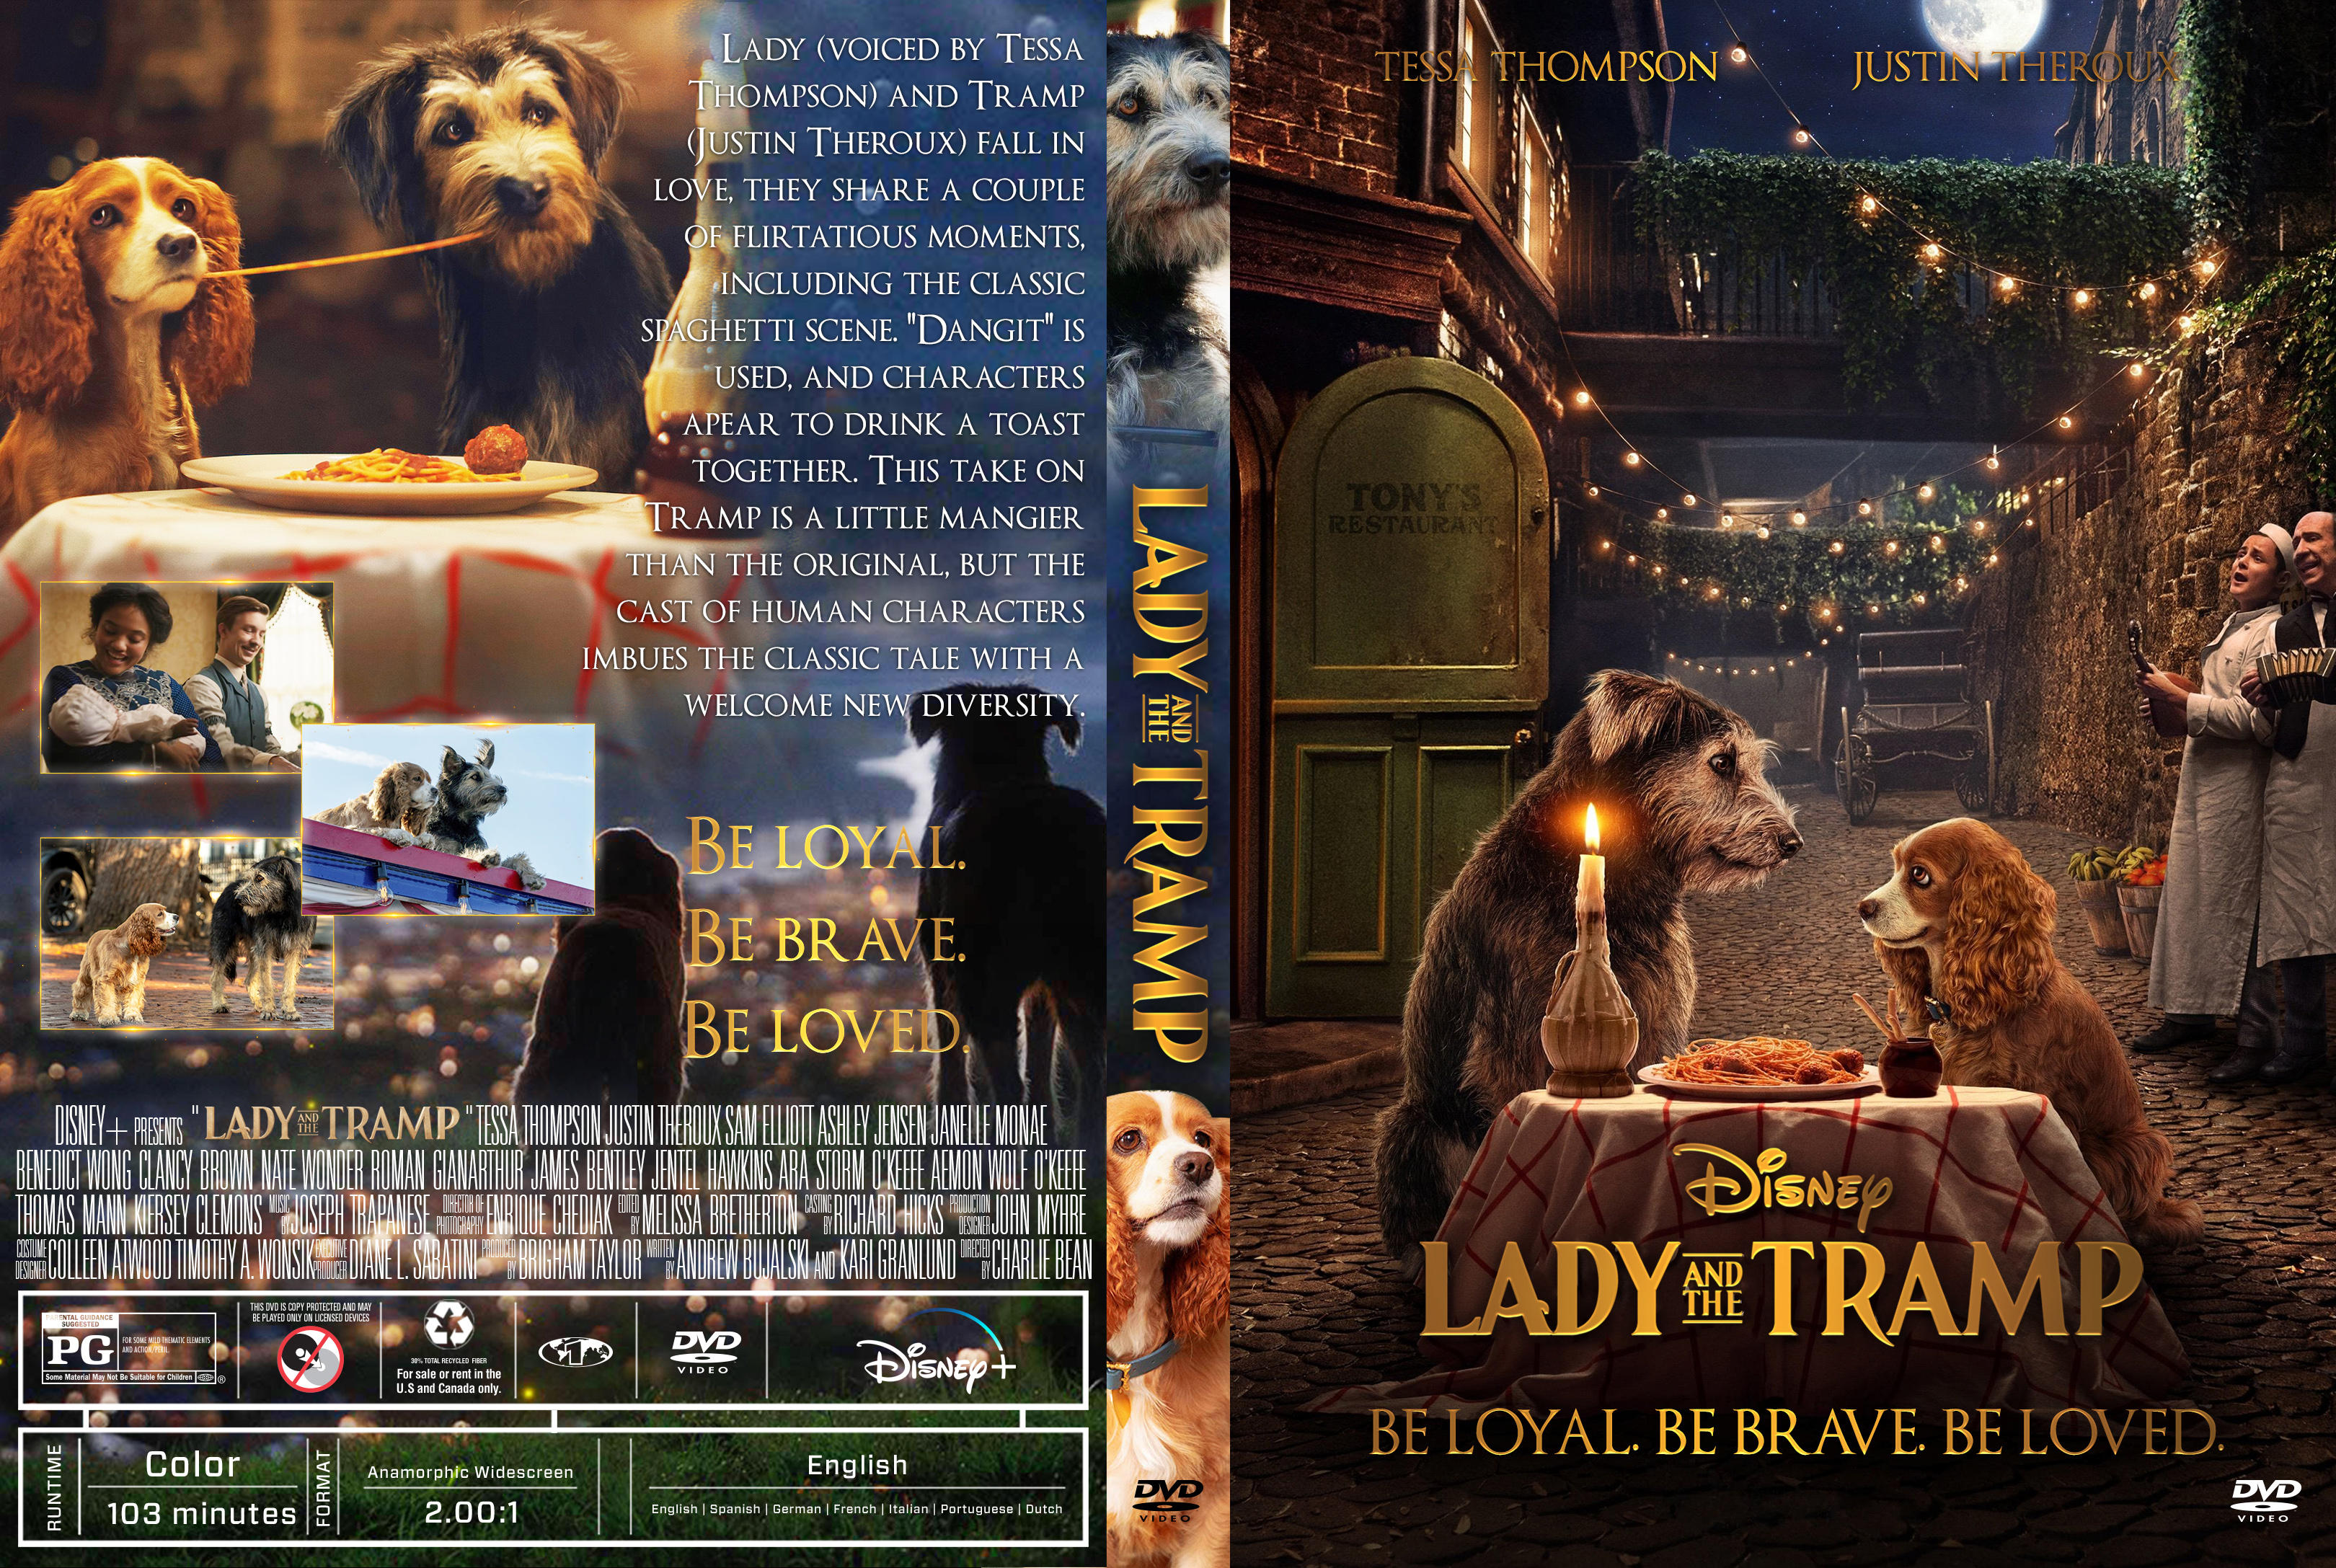 Lady And The Tramp 2019 Front Dvd Covers Cover Century Over 500 000 Album Art Covers For Free